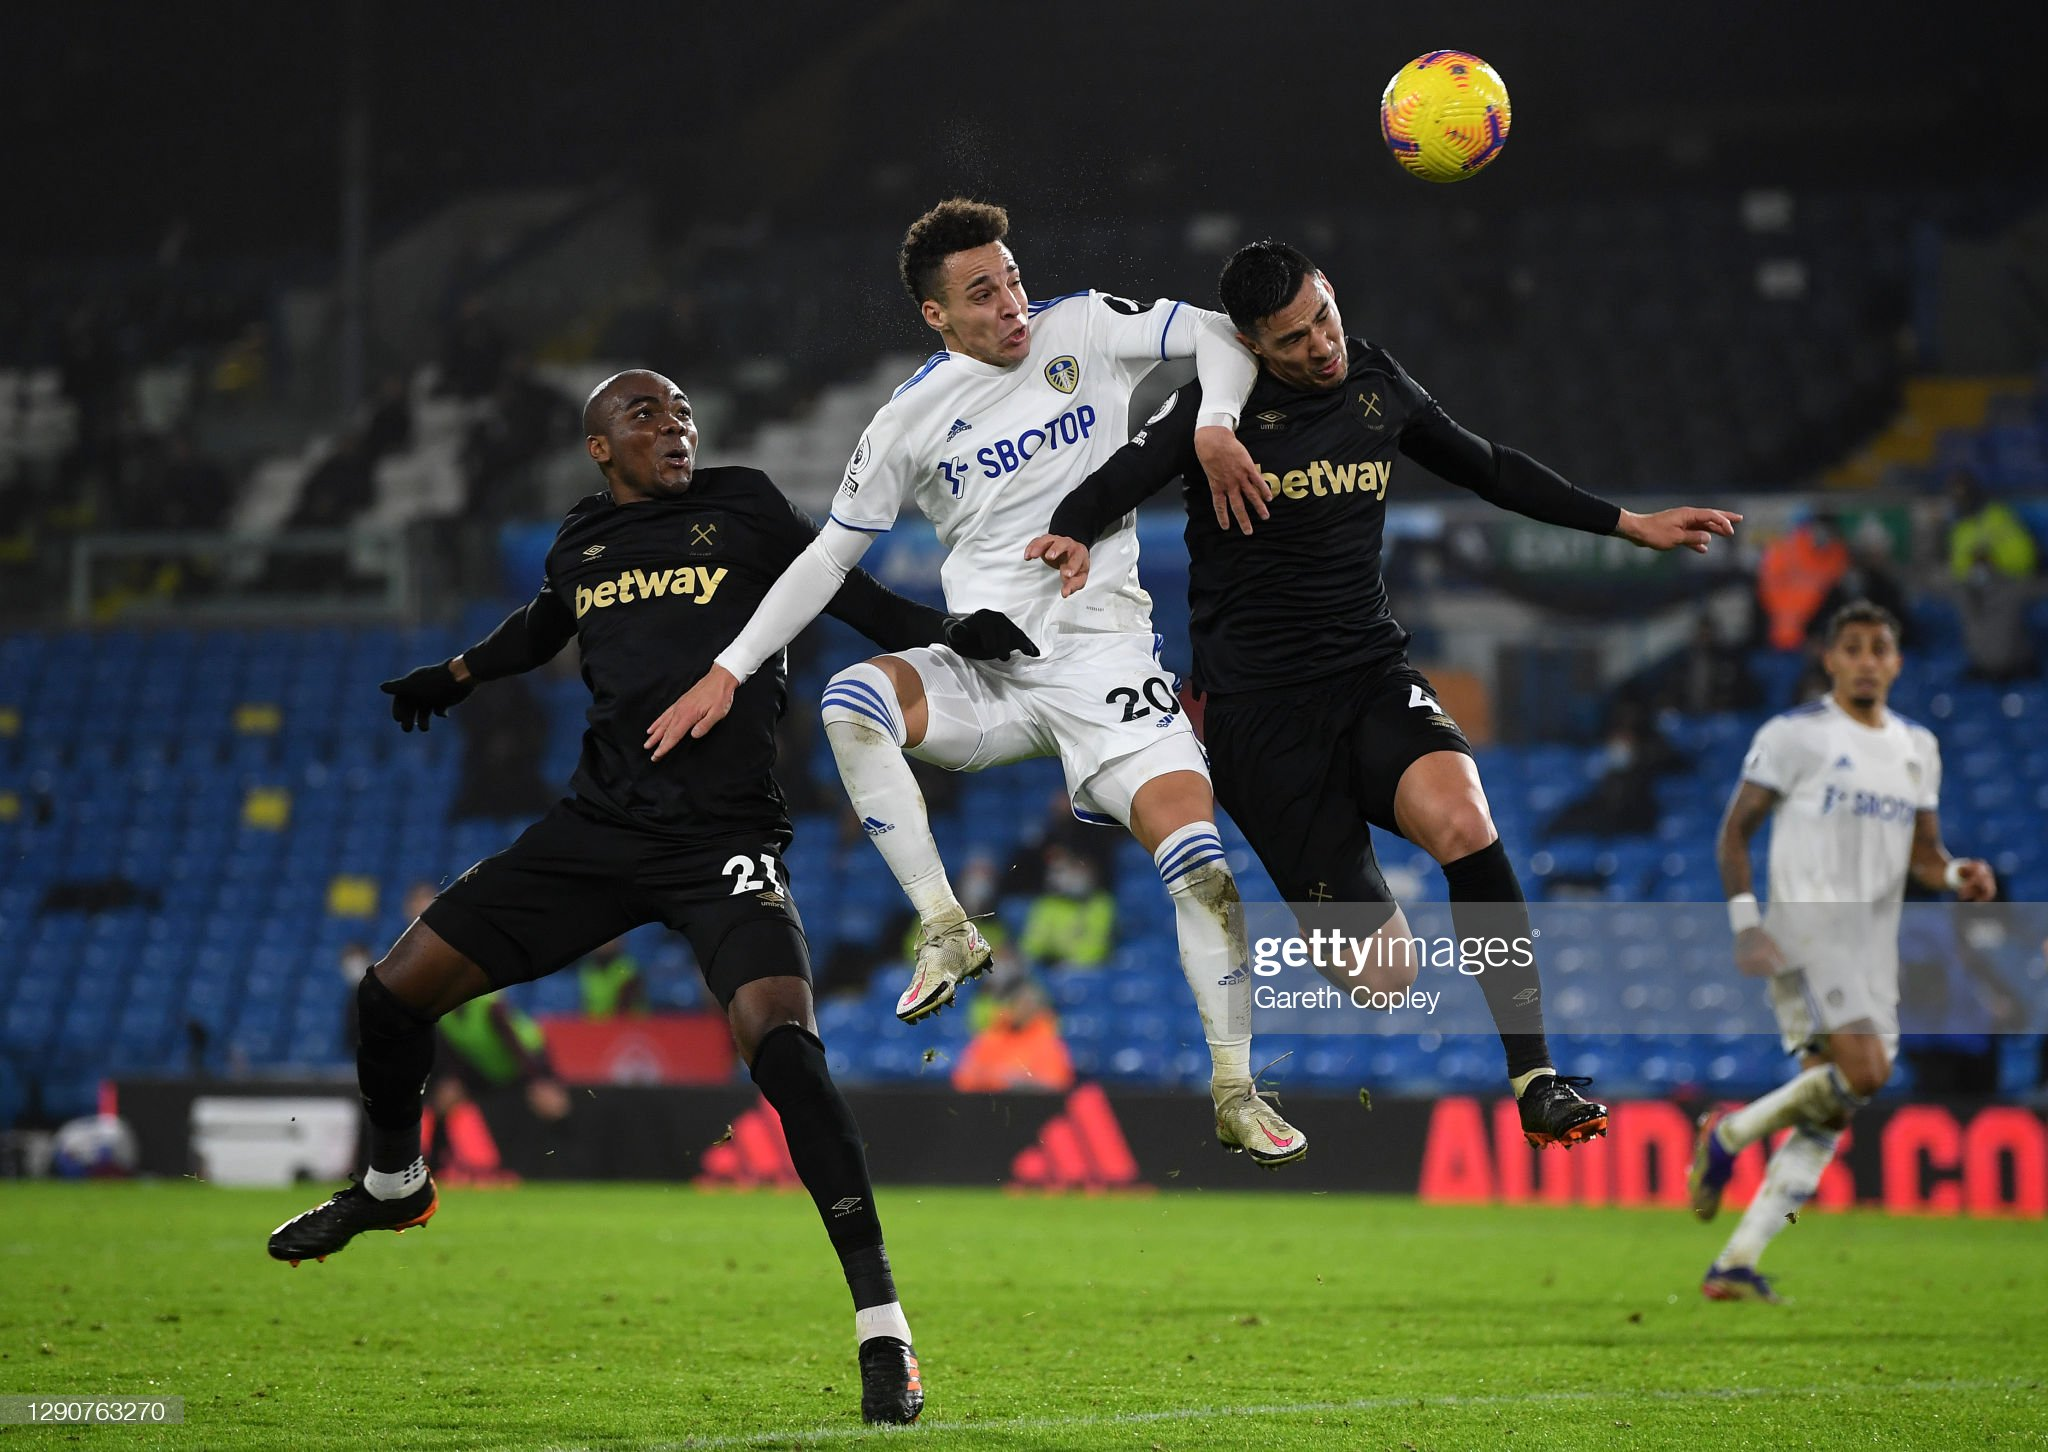 West Ham vs Leeds United Preview, prediction and odds